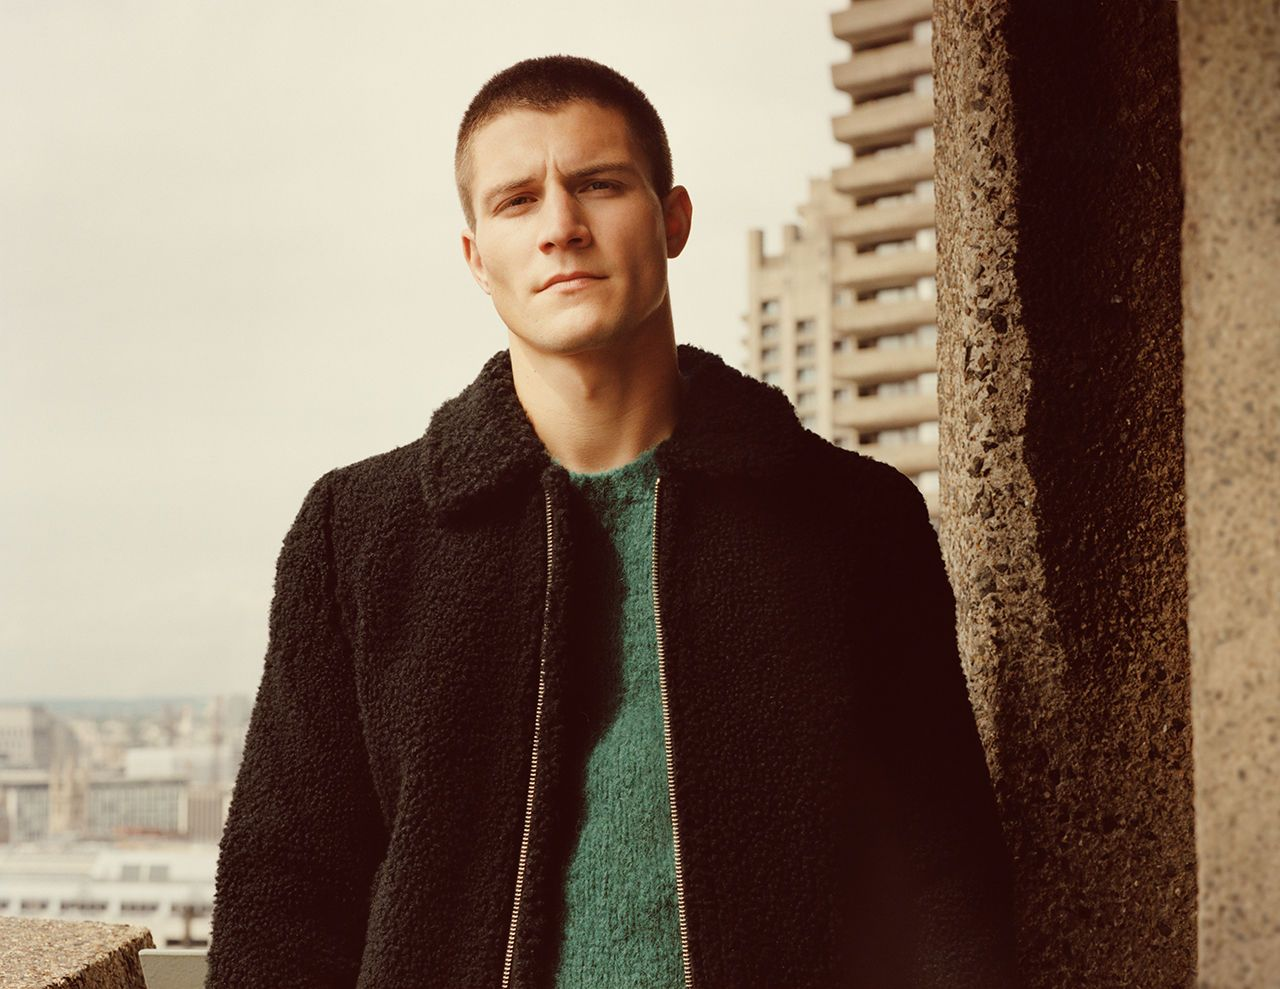 Whistles Menswear AW14 Campaign Whistles Menswear AW14 Campaign new images